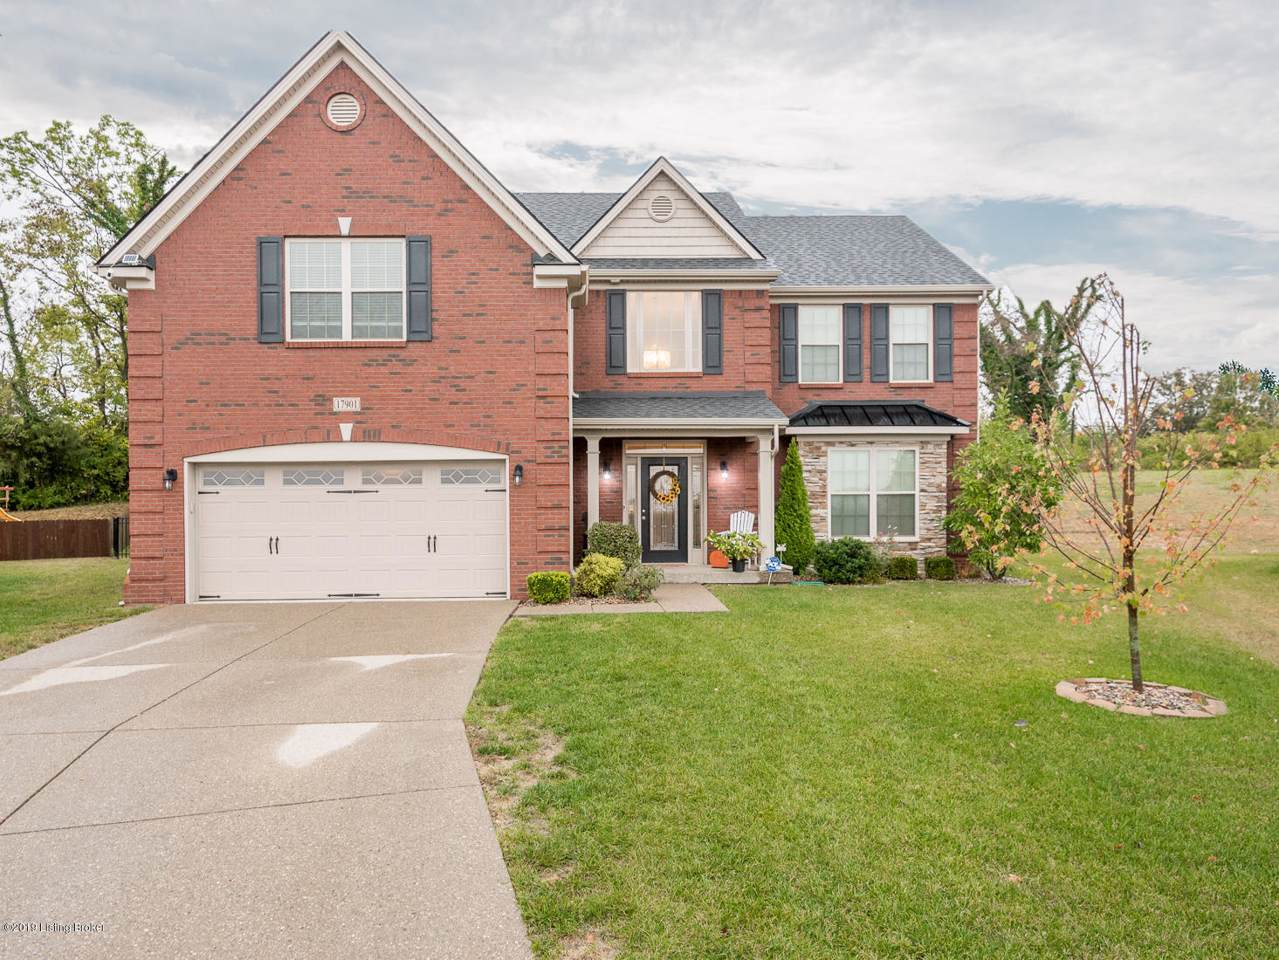 17901 Duckleigh Ct - Photo 1